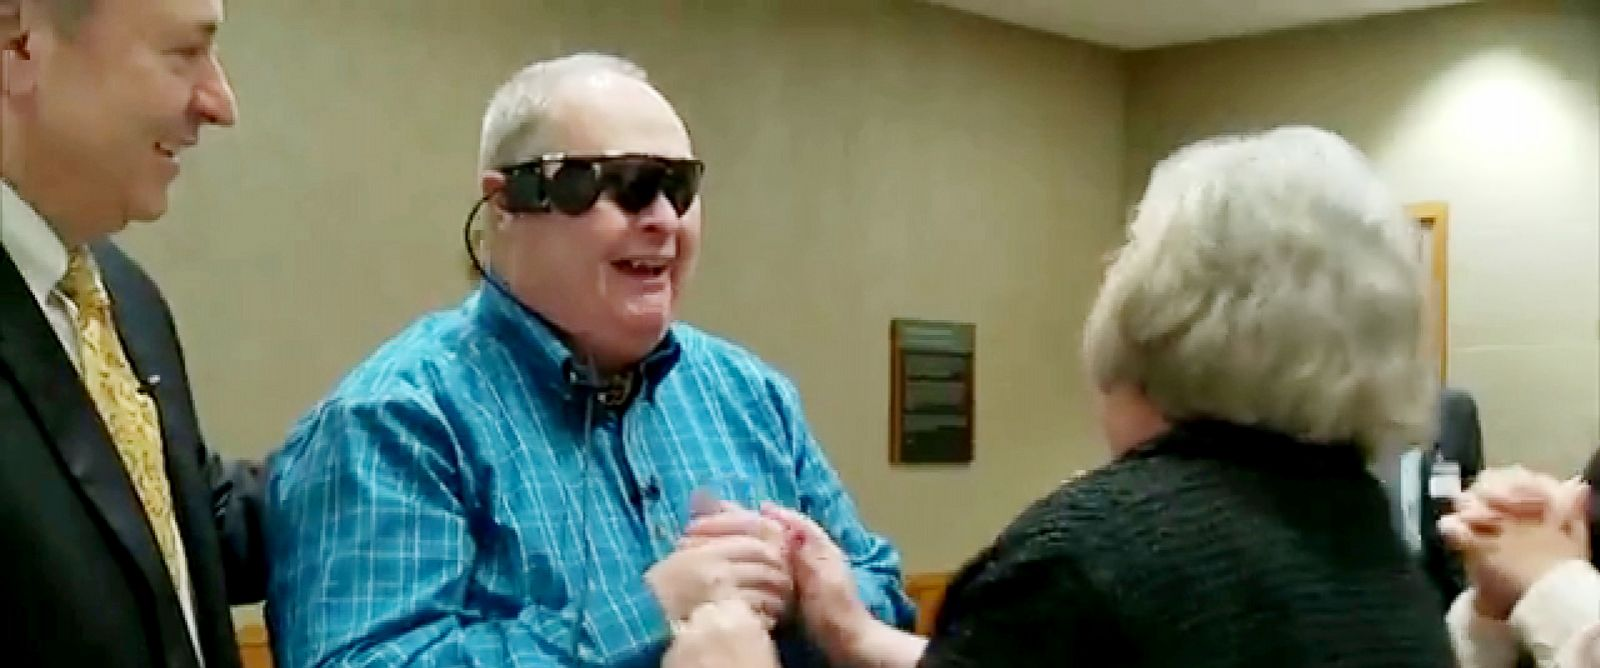 PHOTO: Allen Zderad sees his wife Carmen Zderad for the first time in 10 years after receiving a bionic eye implant from researchers at the Mayo Clinic in Minn.